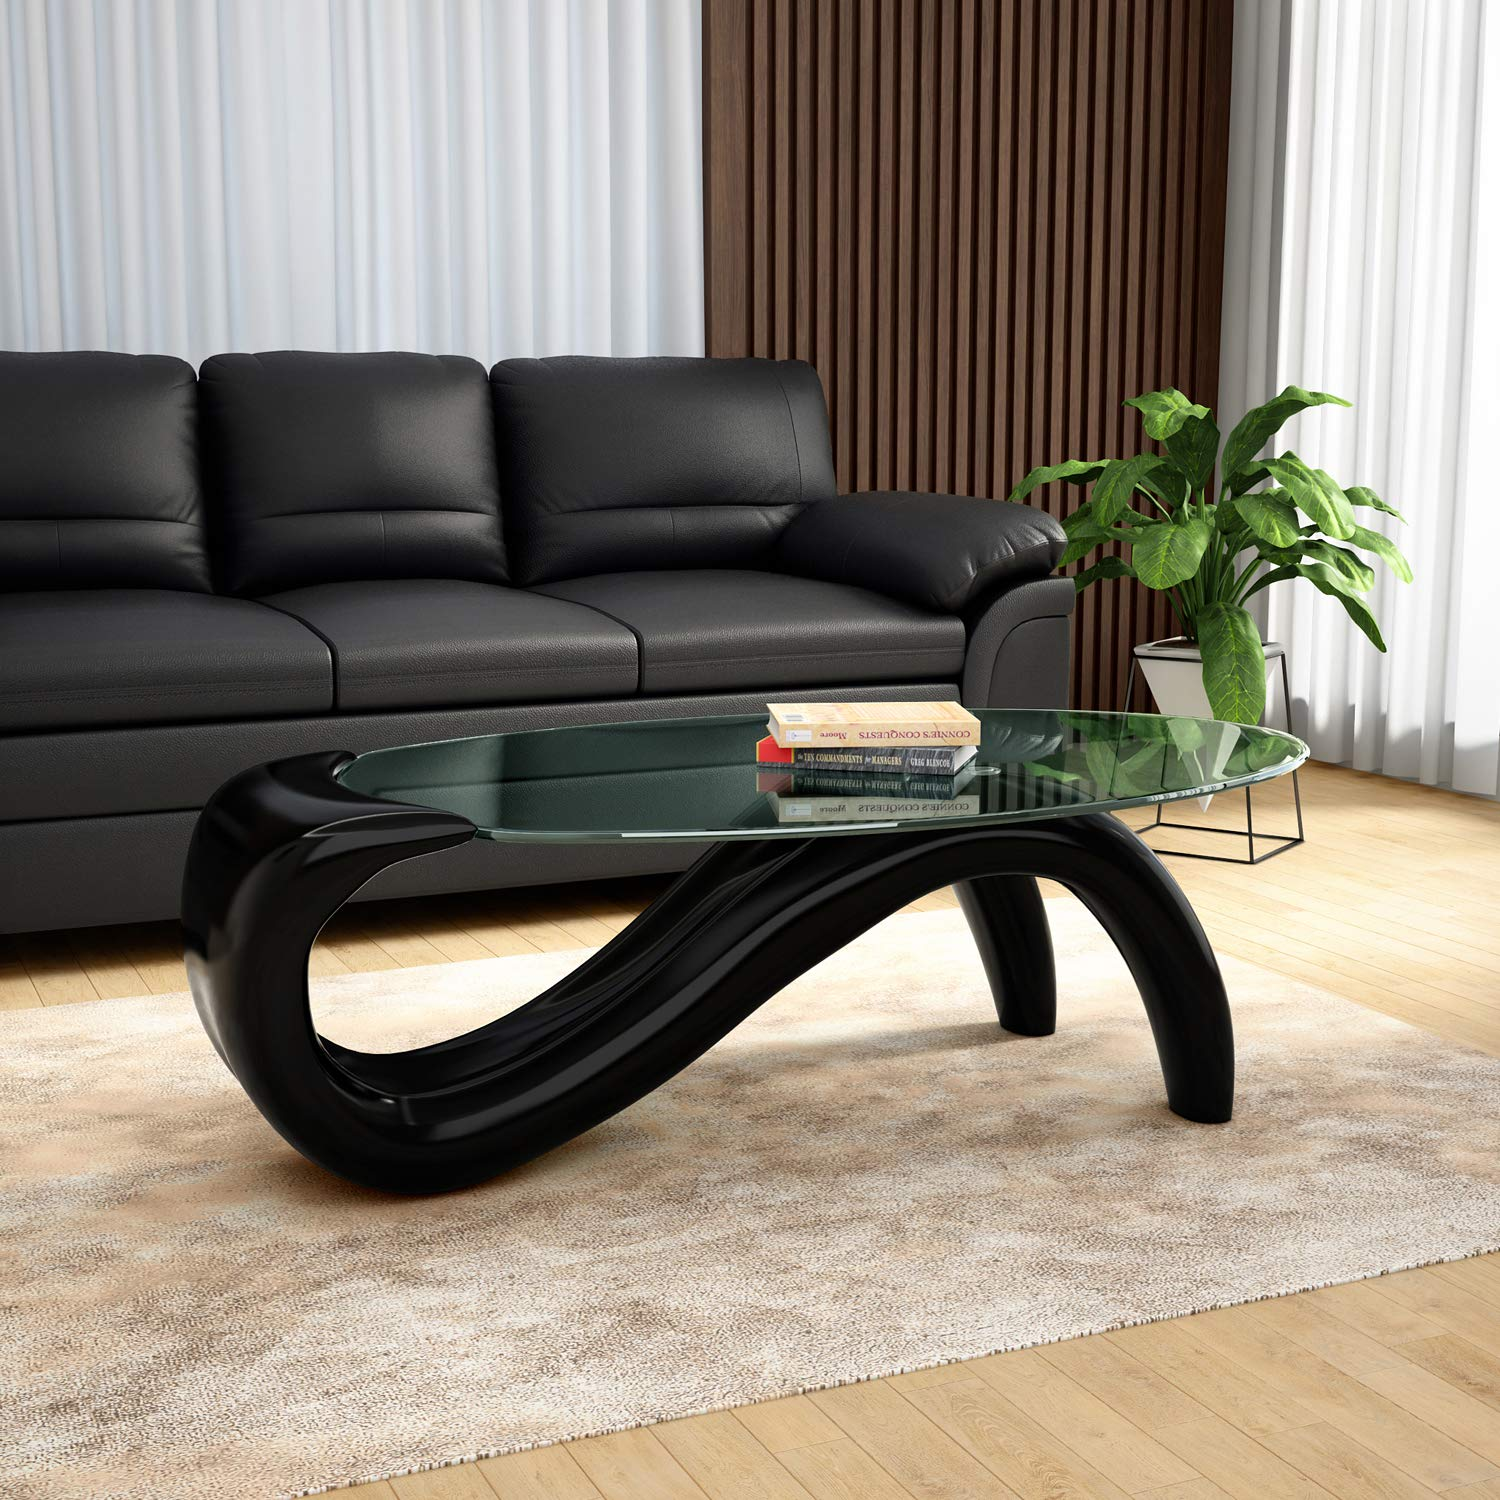 Godrej Interio Caferia Coffee Table (Glossy Finish, Black): Amazon